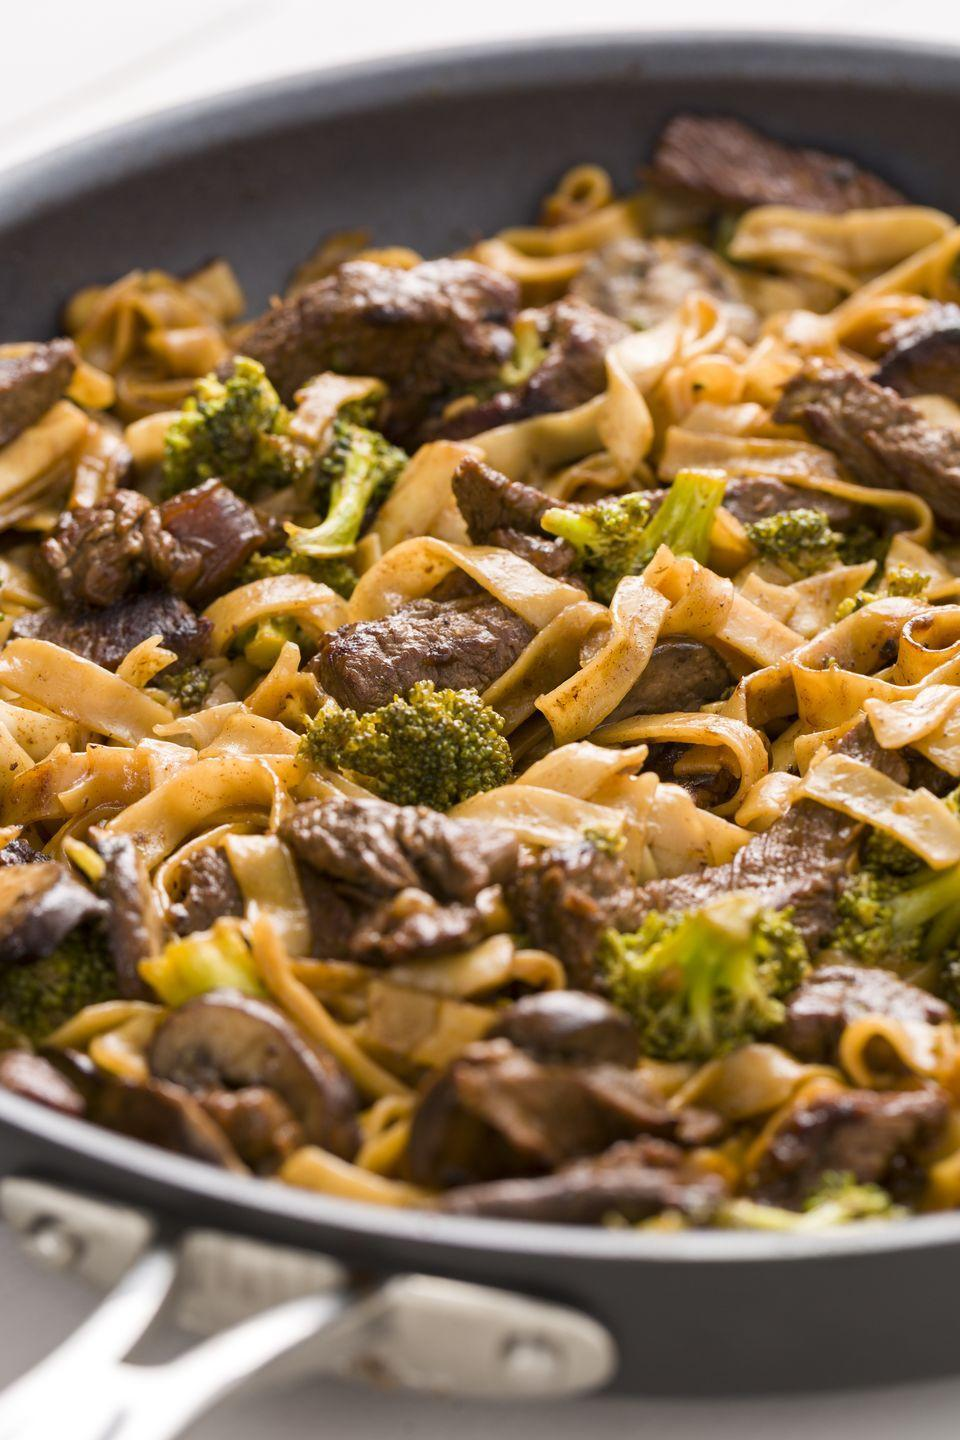 """<p>This sauce is not messing around.</p><p>Get the recipe from <a href=""""https://www.delish.com/cooking/recipe-ideas/recipes/a45477/beef-and-broccoli-noodles-recipe/"""" rel=""""nofollow noopener"""" target=""""_blank"""" data-ylk=""""slk:Delish"""" class=""""link rapid-noclick-resp"""">Delish</a>.</p>"""